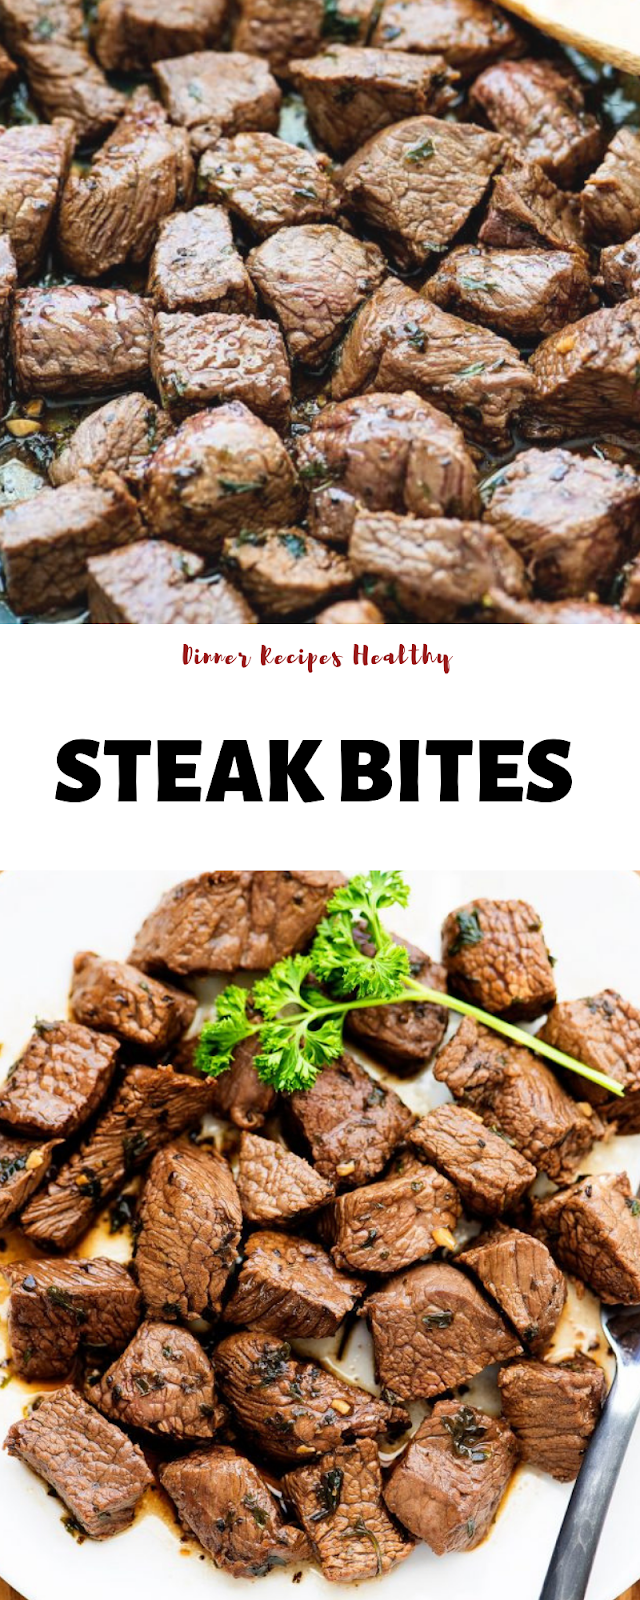 Dinner Recipes Healthy | Stеаk Bites #chickenbreastrecipeseasy Dinner Recipes Healthy | Stеаk Bites  | Dinner ideas, Easy dinner recipes, Food recipes, Baked chicken recipes, Chicken casserole recipes, Chicken breastrecipes, dinner recipes healthy, Easy dinner recipes, Healthy meals, Easy healthy dinner, Whole 30 recipes, Clean eating recipes, Paleo recipes, Easy dinner recipes, #dinner, #recipes,#dinnerforfamily, #dinnerfortwo, #delicious, #yummy, #steakbites, #chickenbreastrecipeseasy